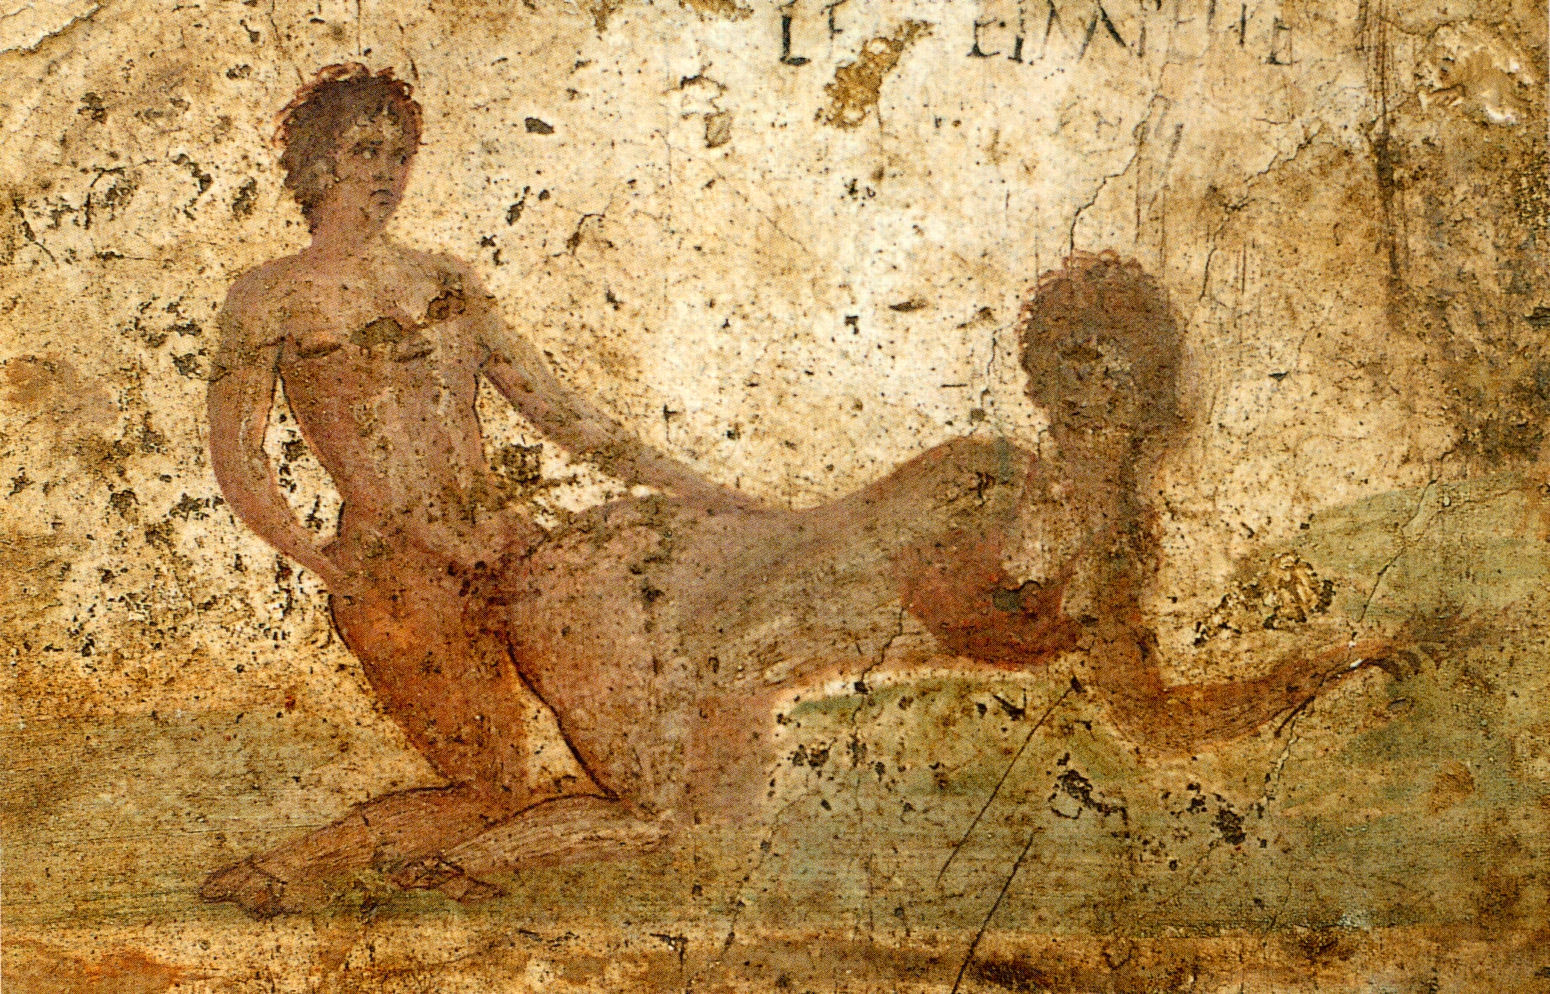 Roman fresco from the Casa del Re di Prussia in Pompeii, circa 69-79 AD.